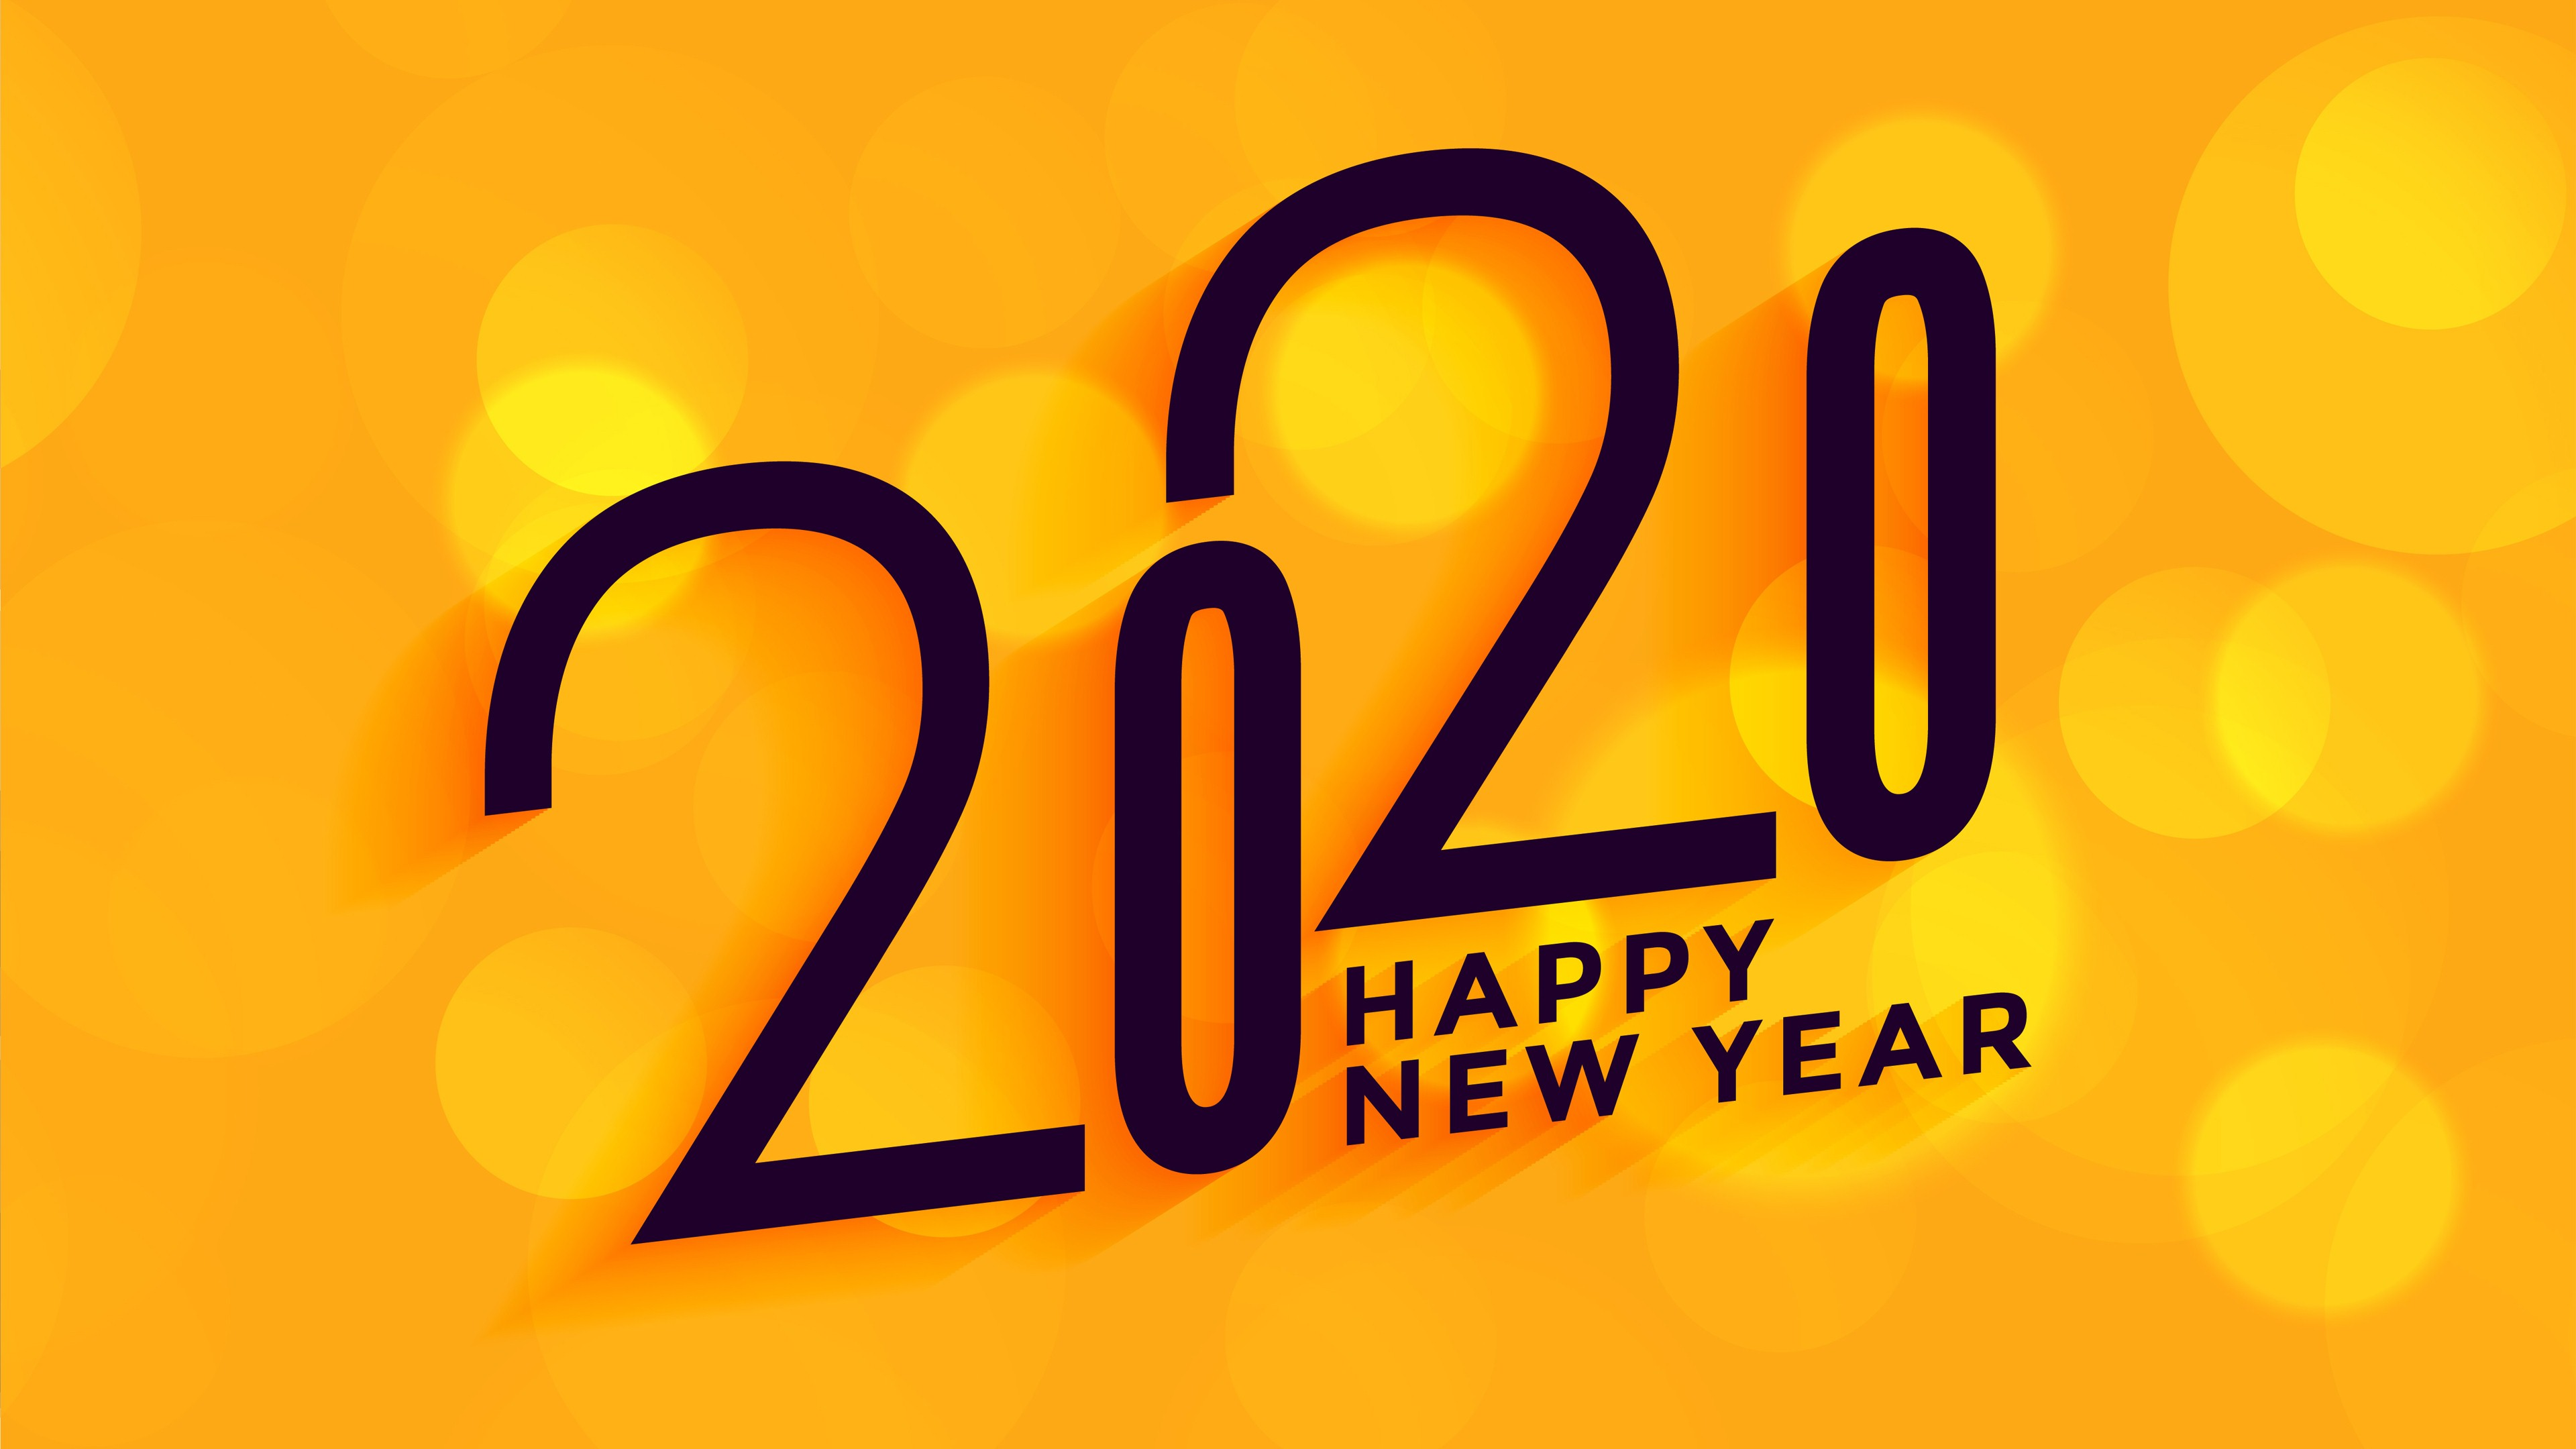 download 2020 Happy New Year Yellow 4K Wallpaper HD 3840x2160